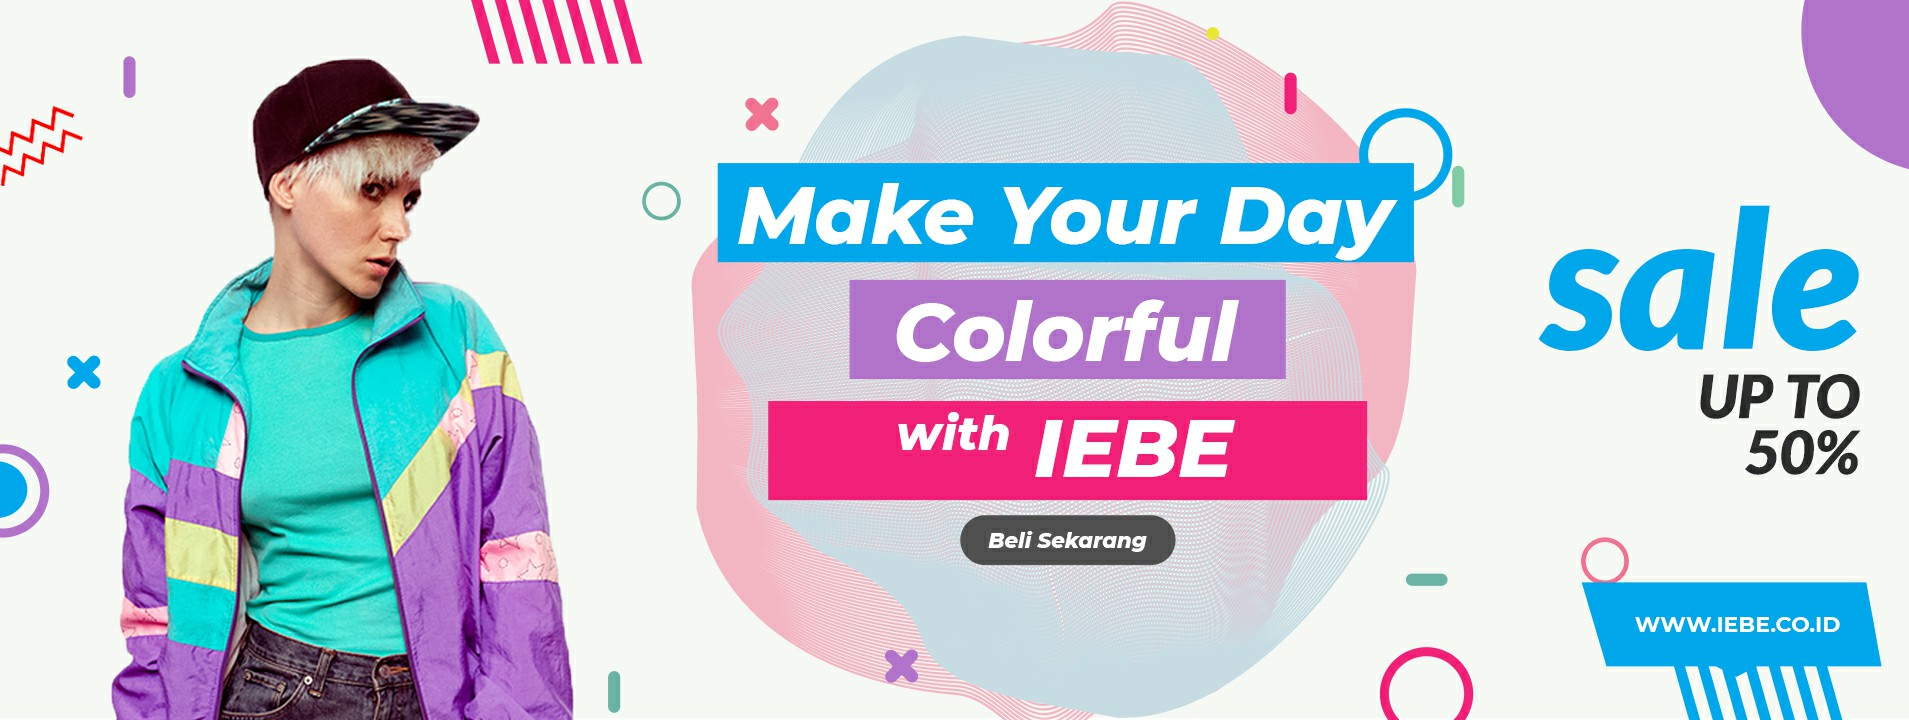 IEBE COLORFUL